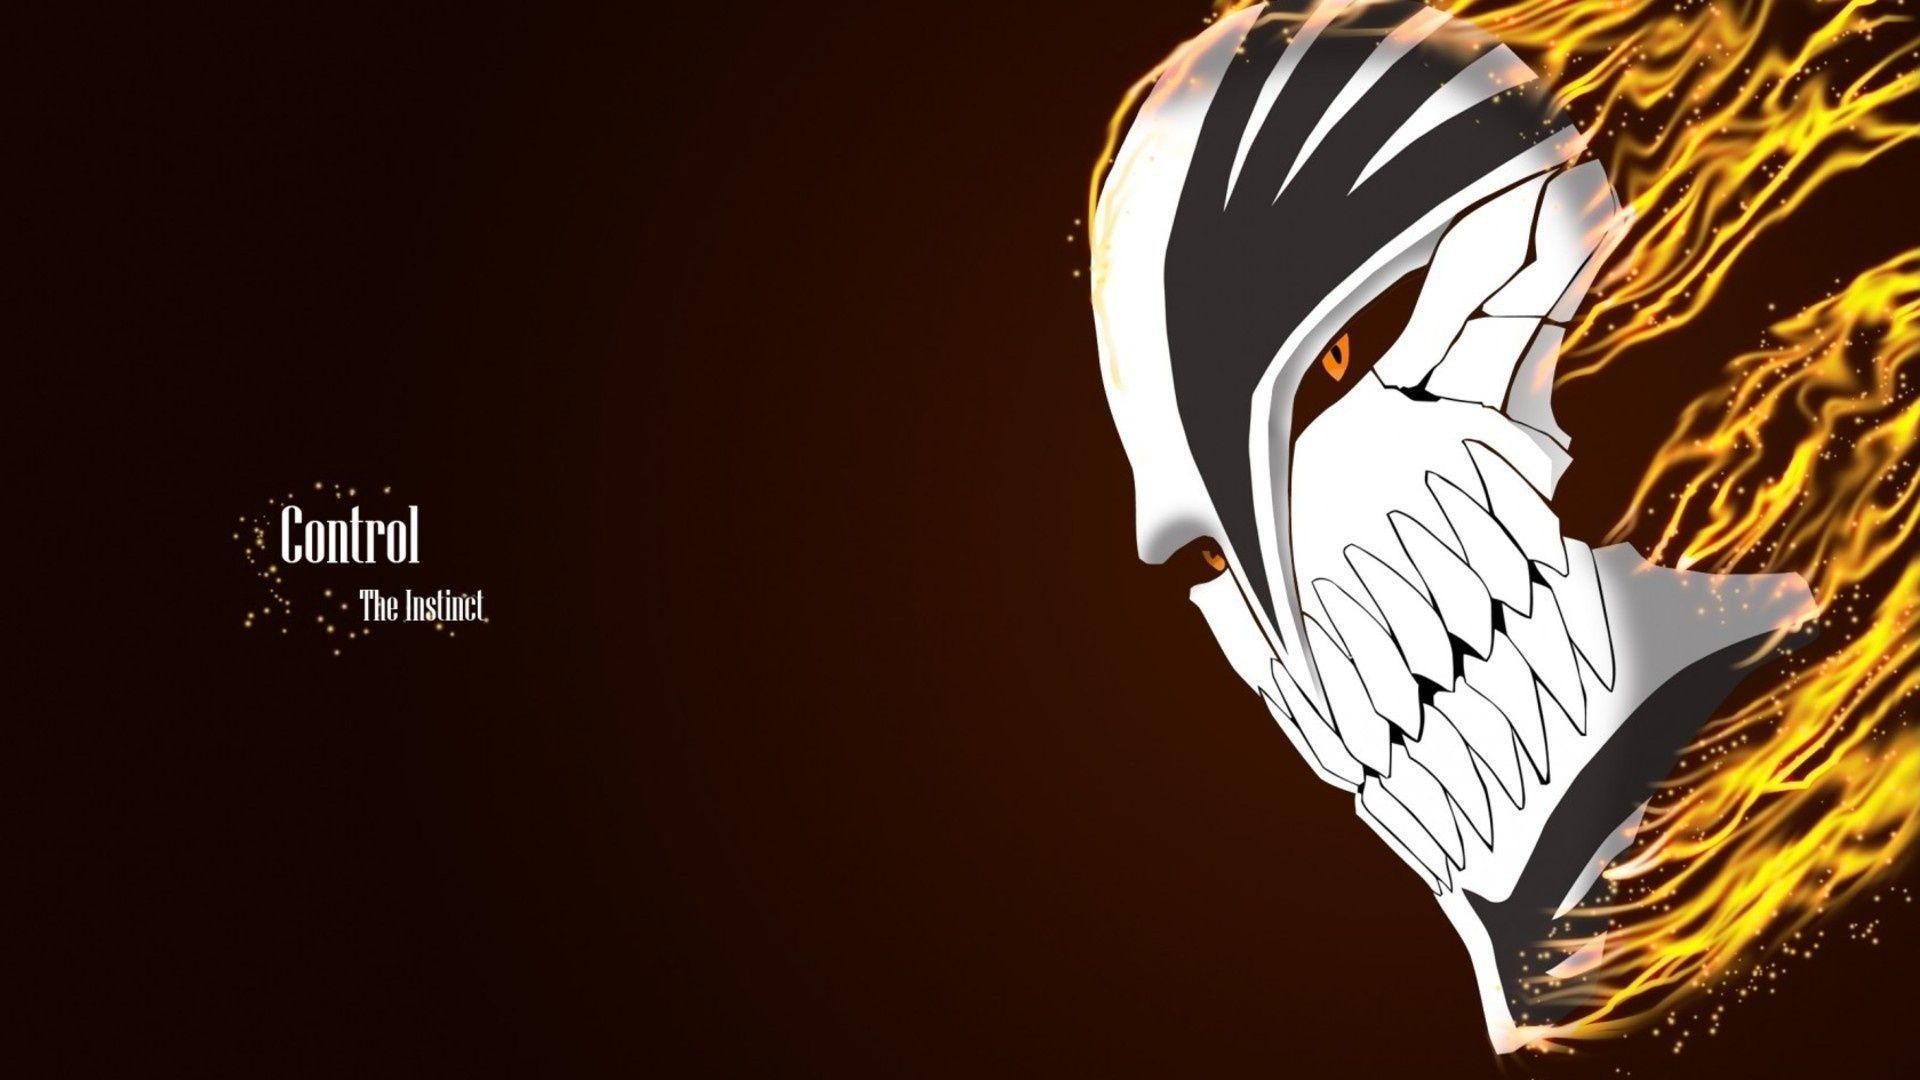 bleach wallpaper 1920 x 1080 - photo #22